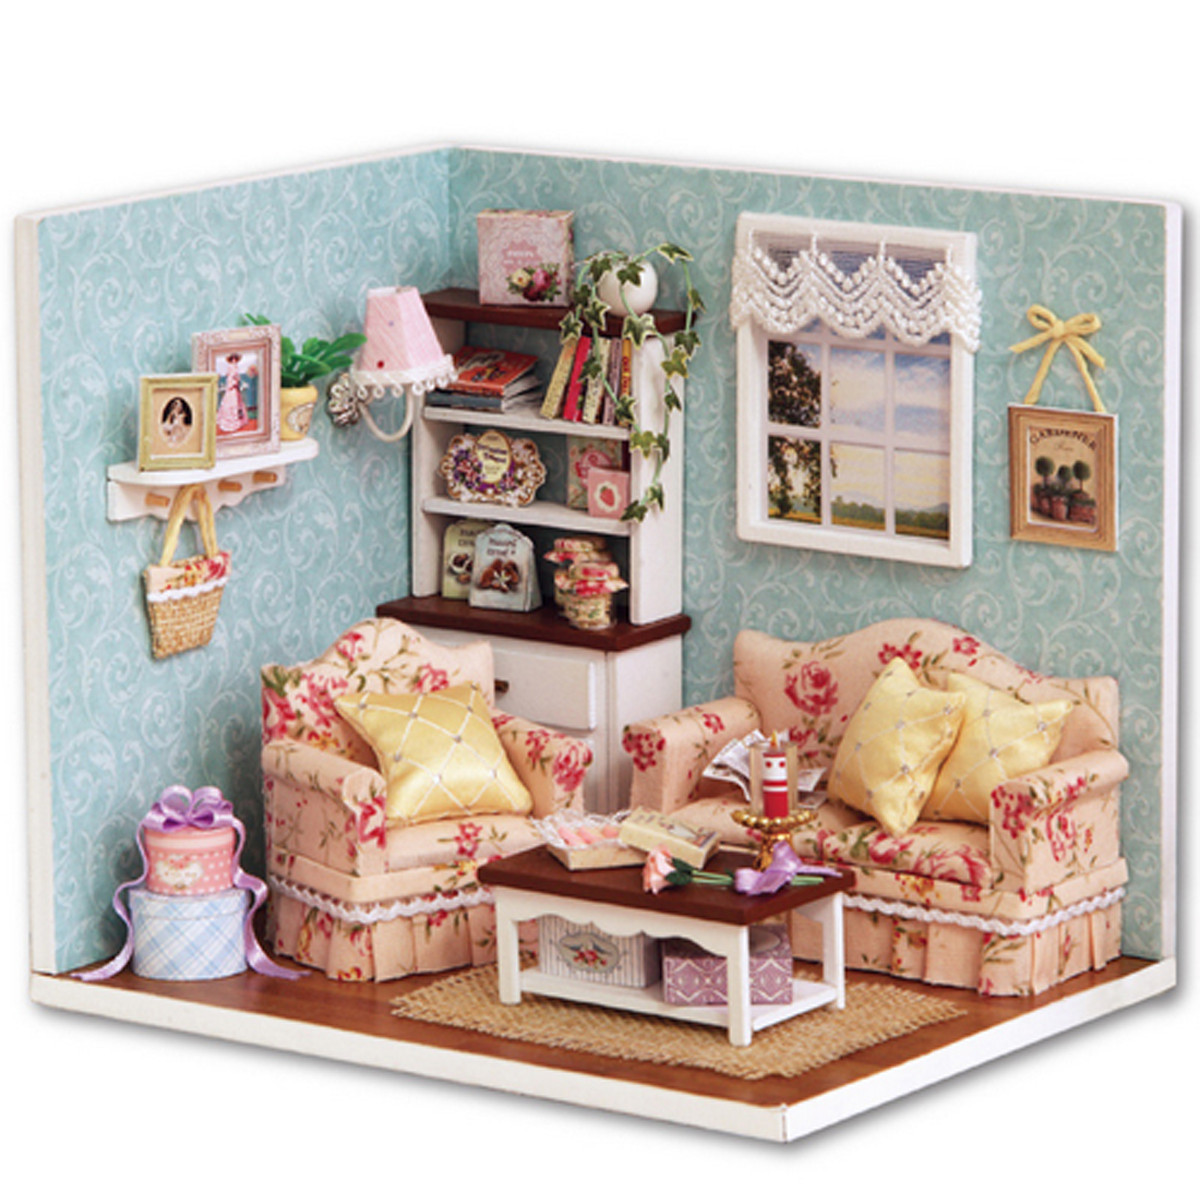 Best ideas about DIY Dollhouse Kit . Save or Pin Dollhouse Miniature DIY Kit Happy Time Room With Cover Now.